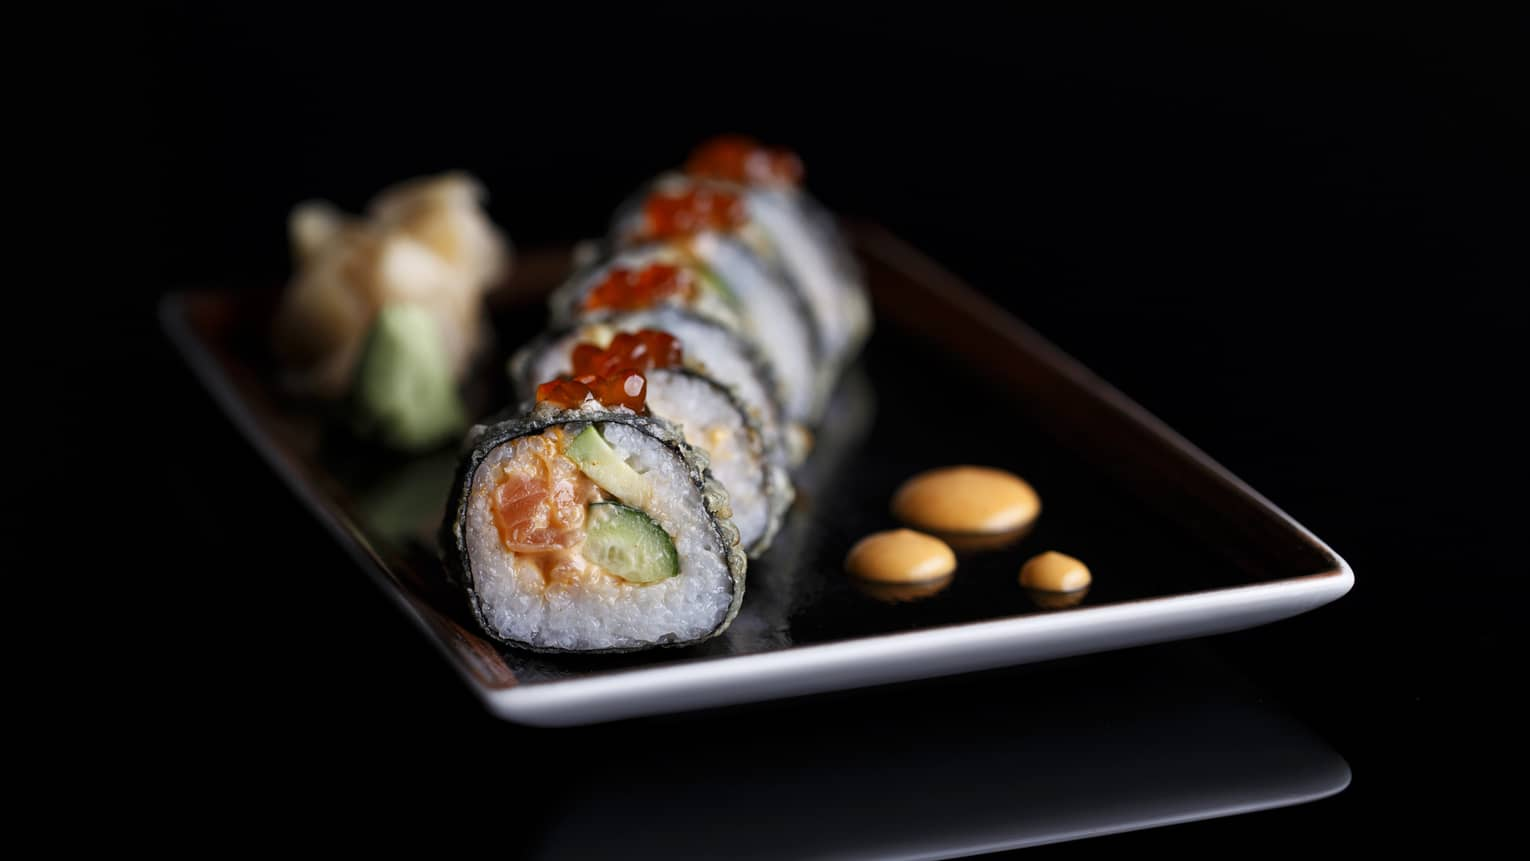 Handcrafted maki sushi roll with cucumber, salmon and avocado on black tray on shiny black table